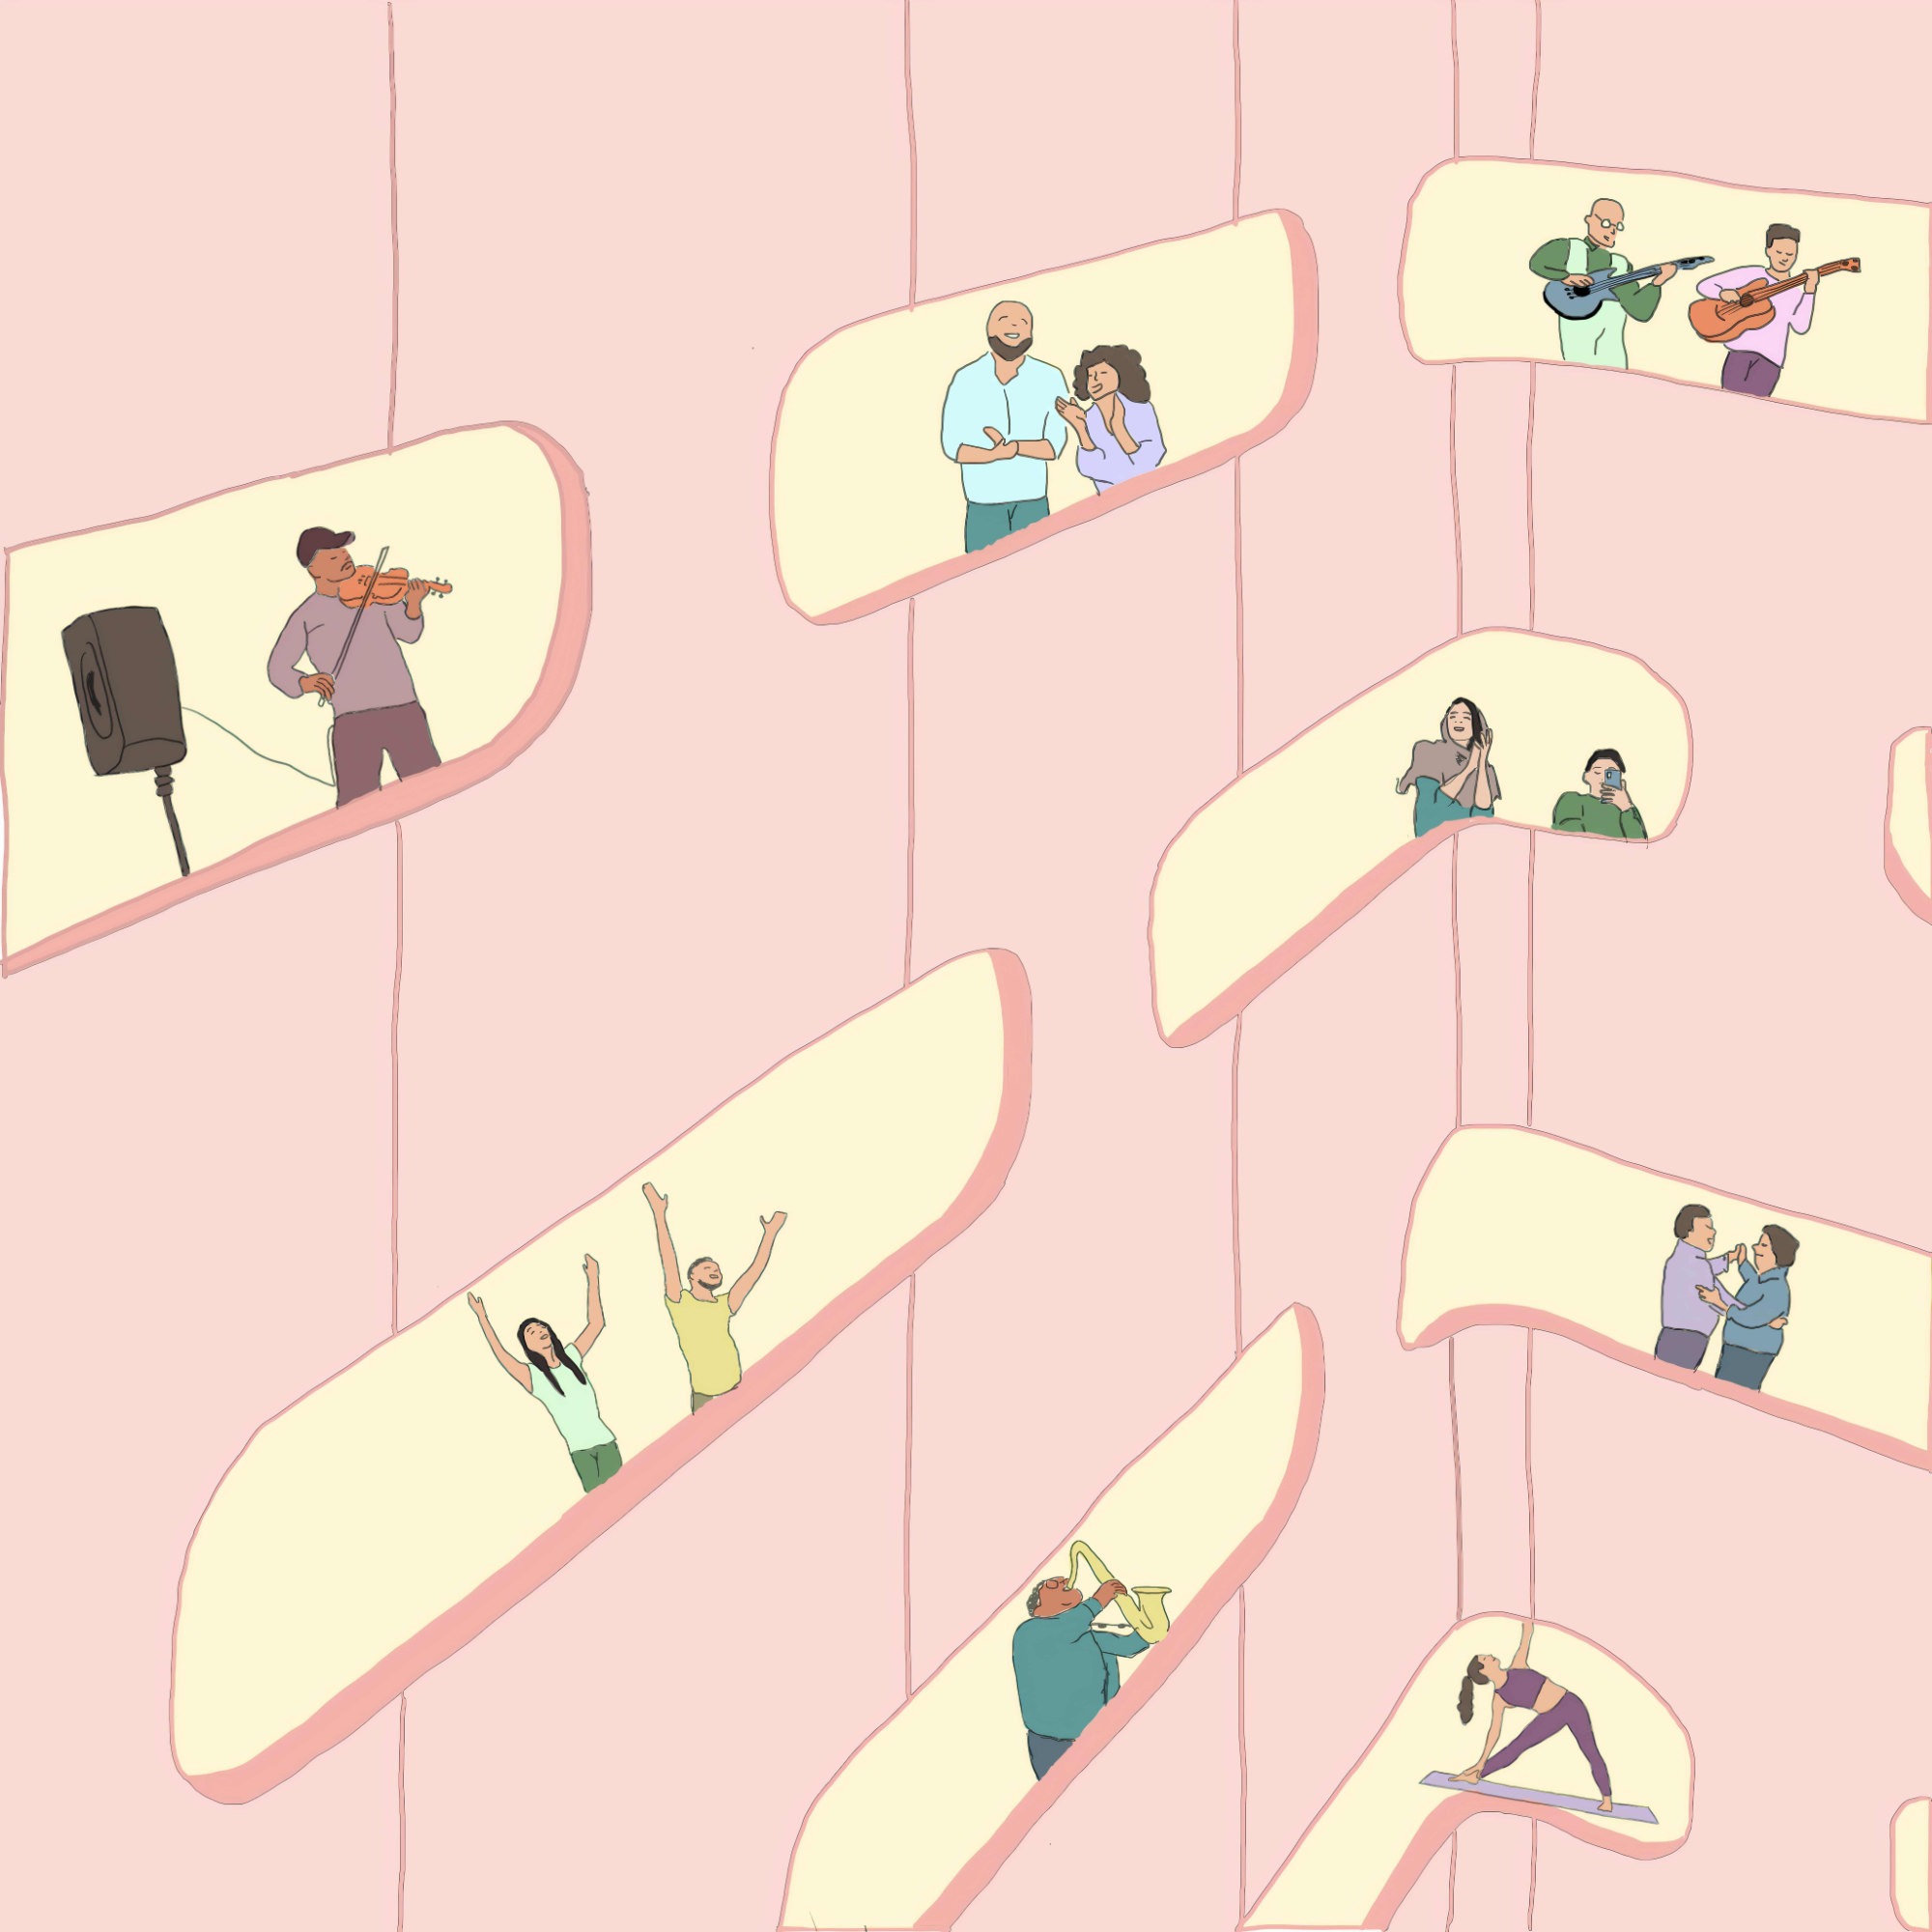 An illustration of people in the windows of a light pink building.